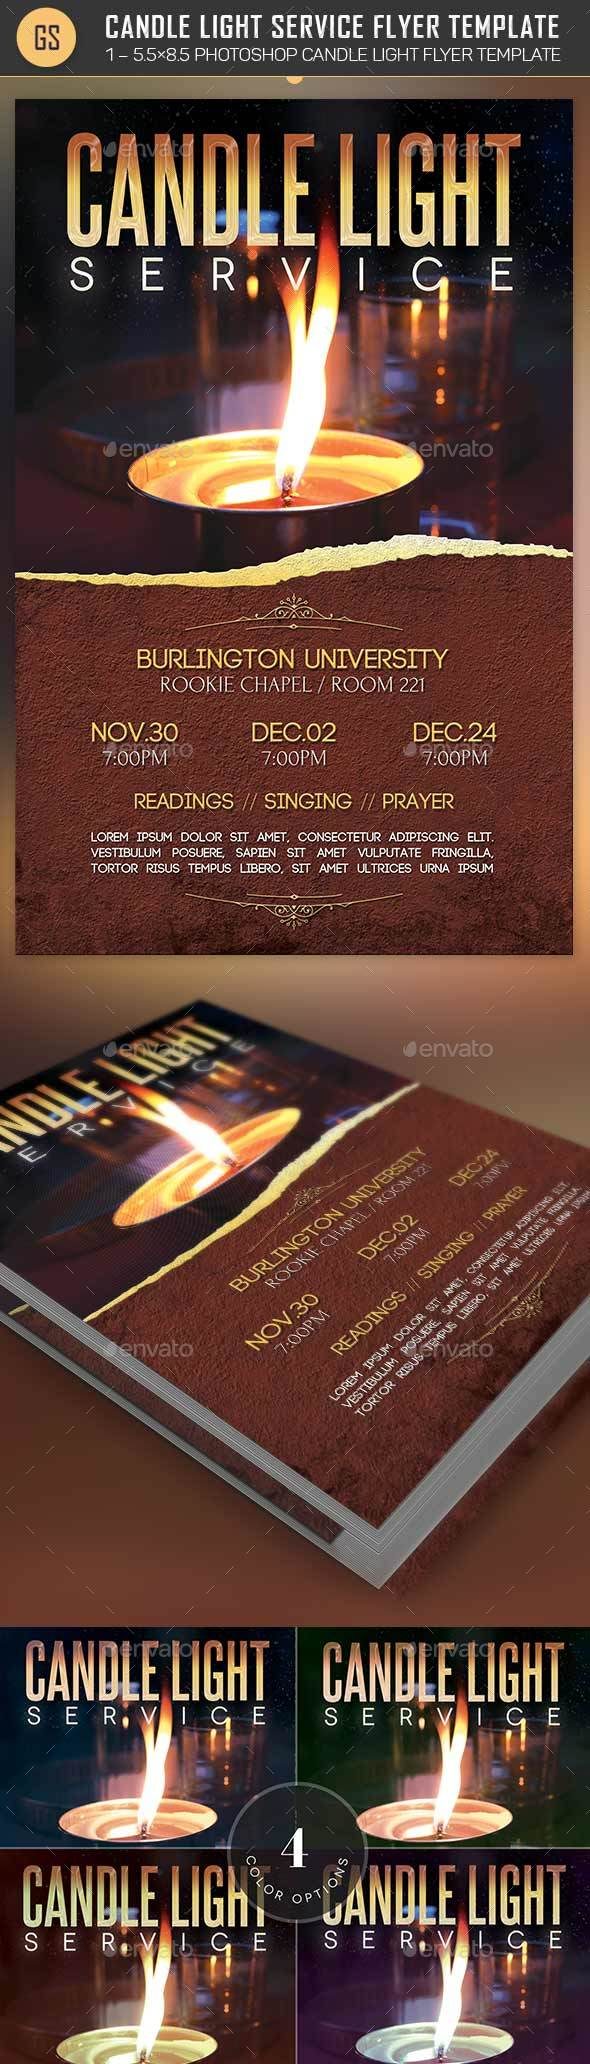 Candle Light Service Flyer Template - Church Flyers